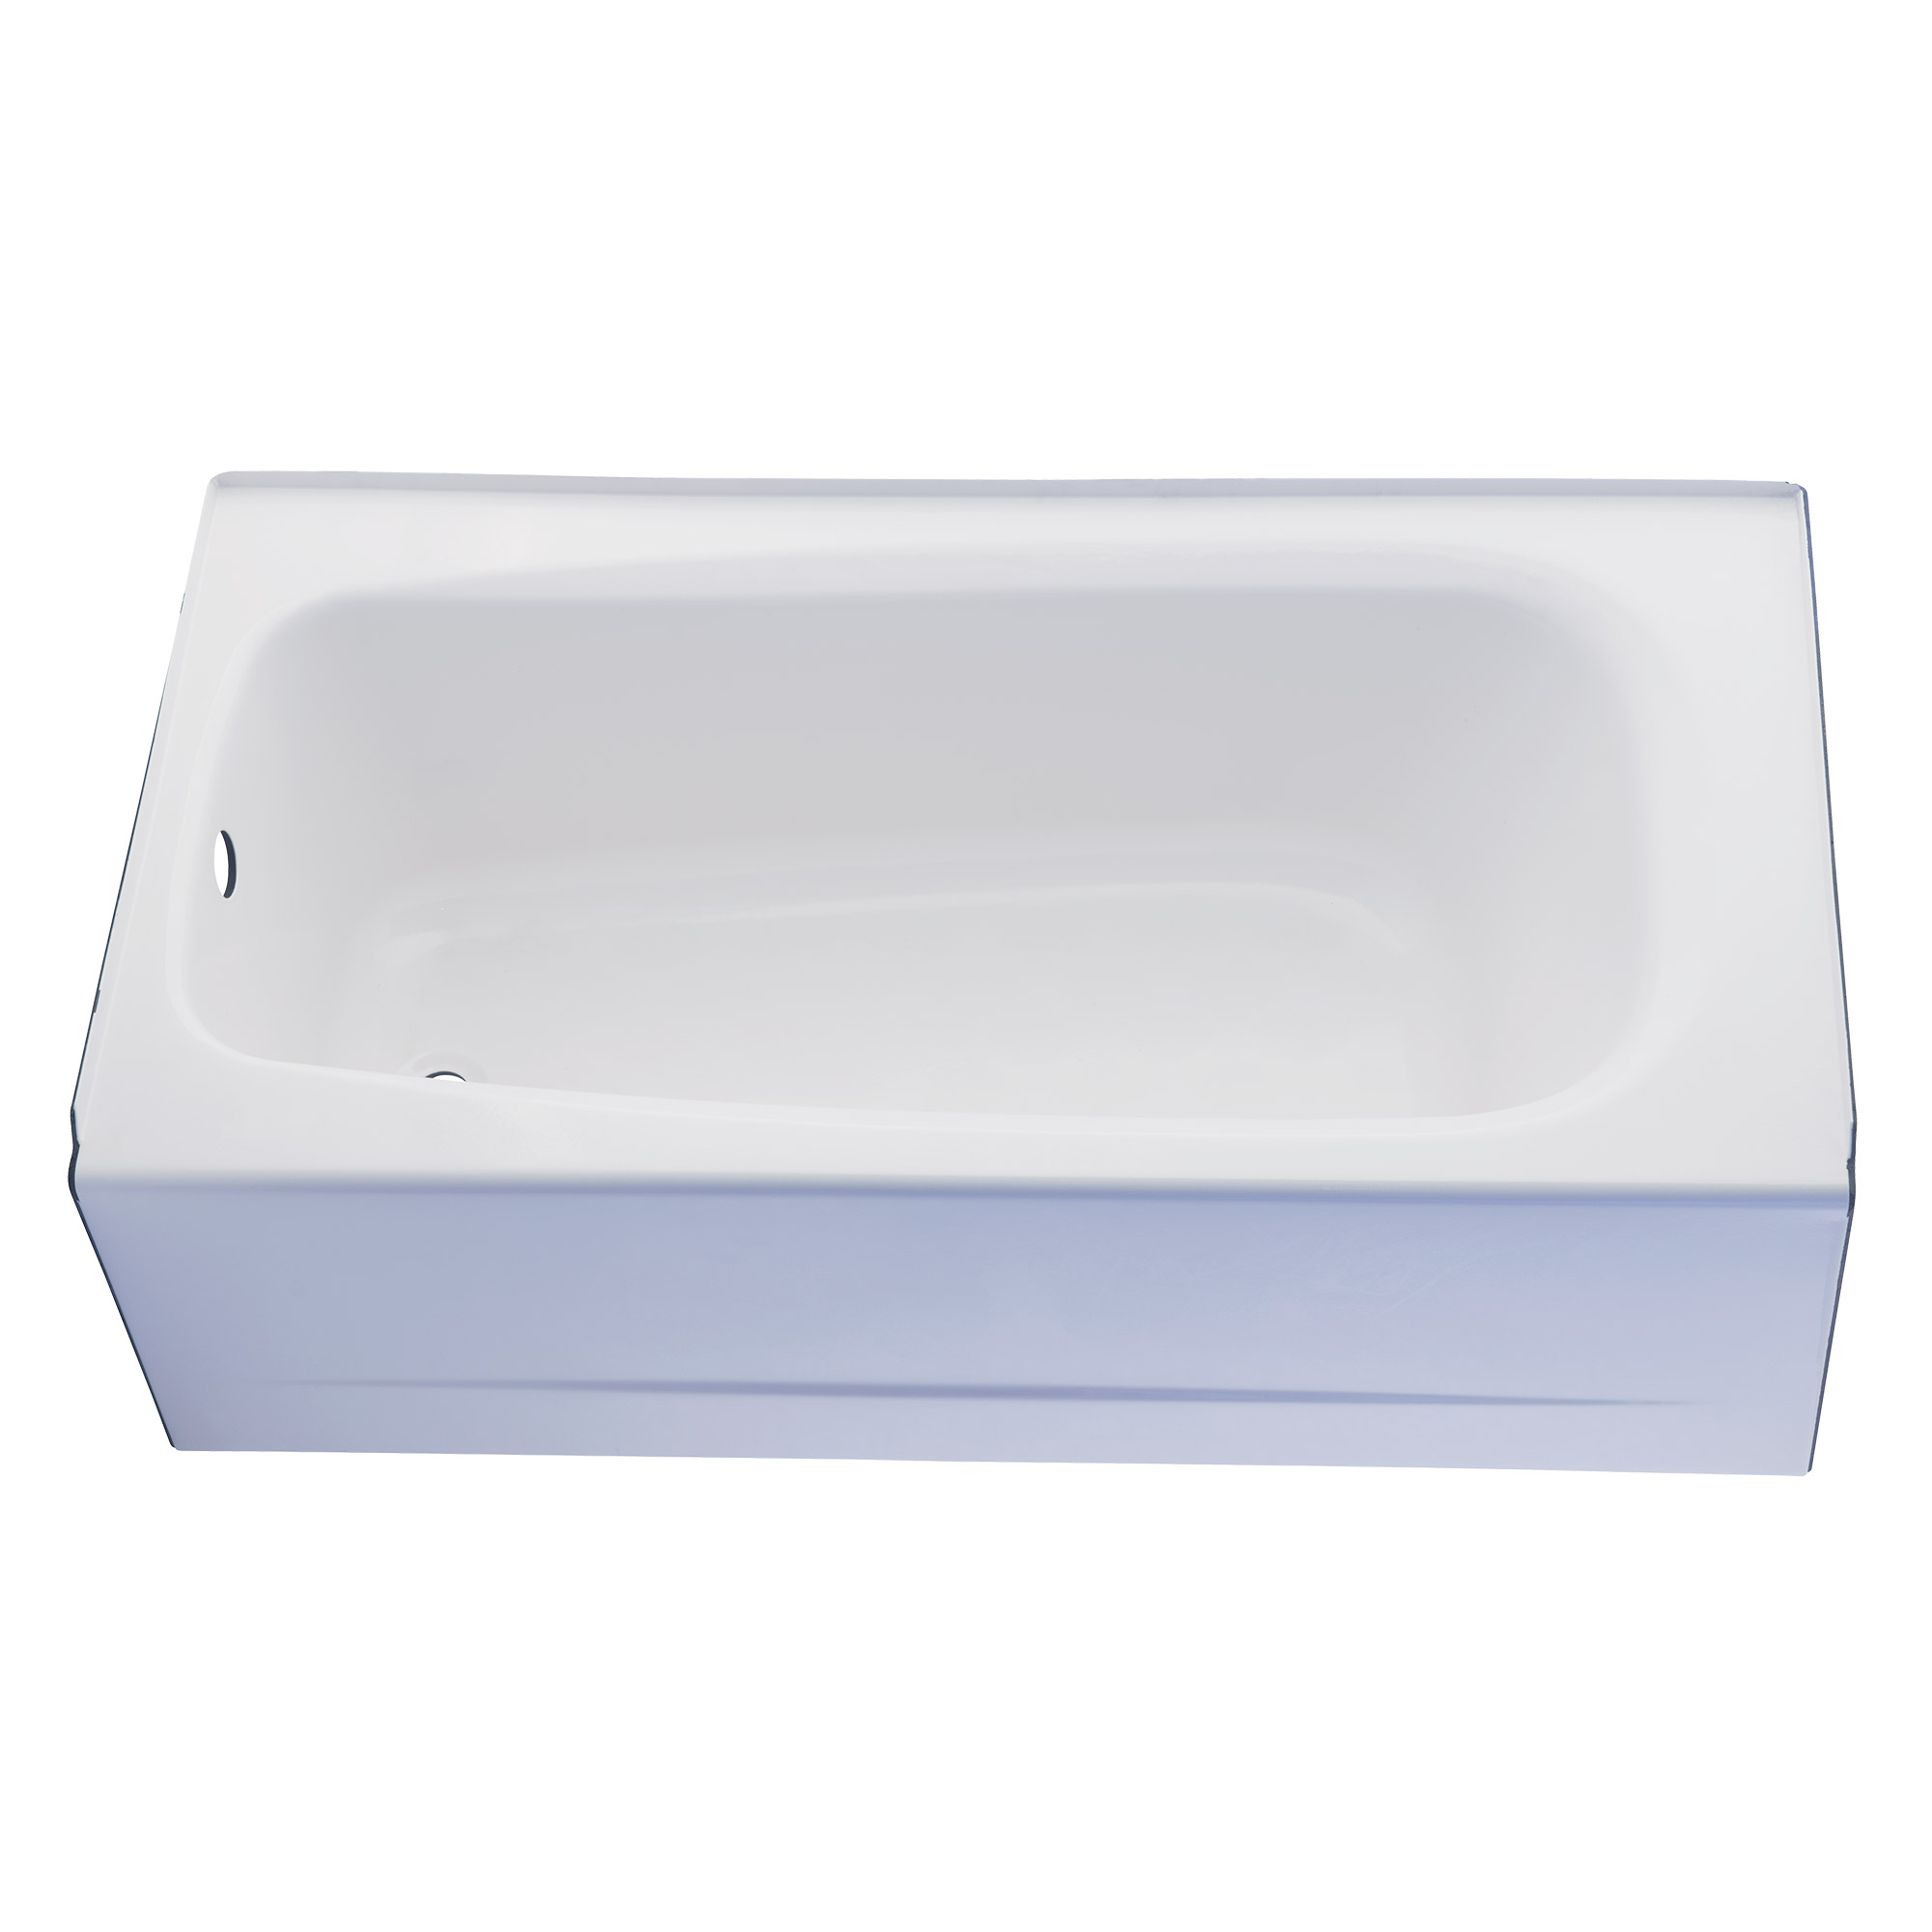 shower bathtub your modern contractors home corner bathtubs soaker glass deep designs remodeling the soaking air for choices extra most perfect tub of simple bathroom design jet l and reliable